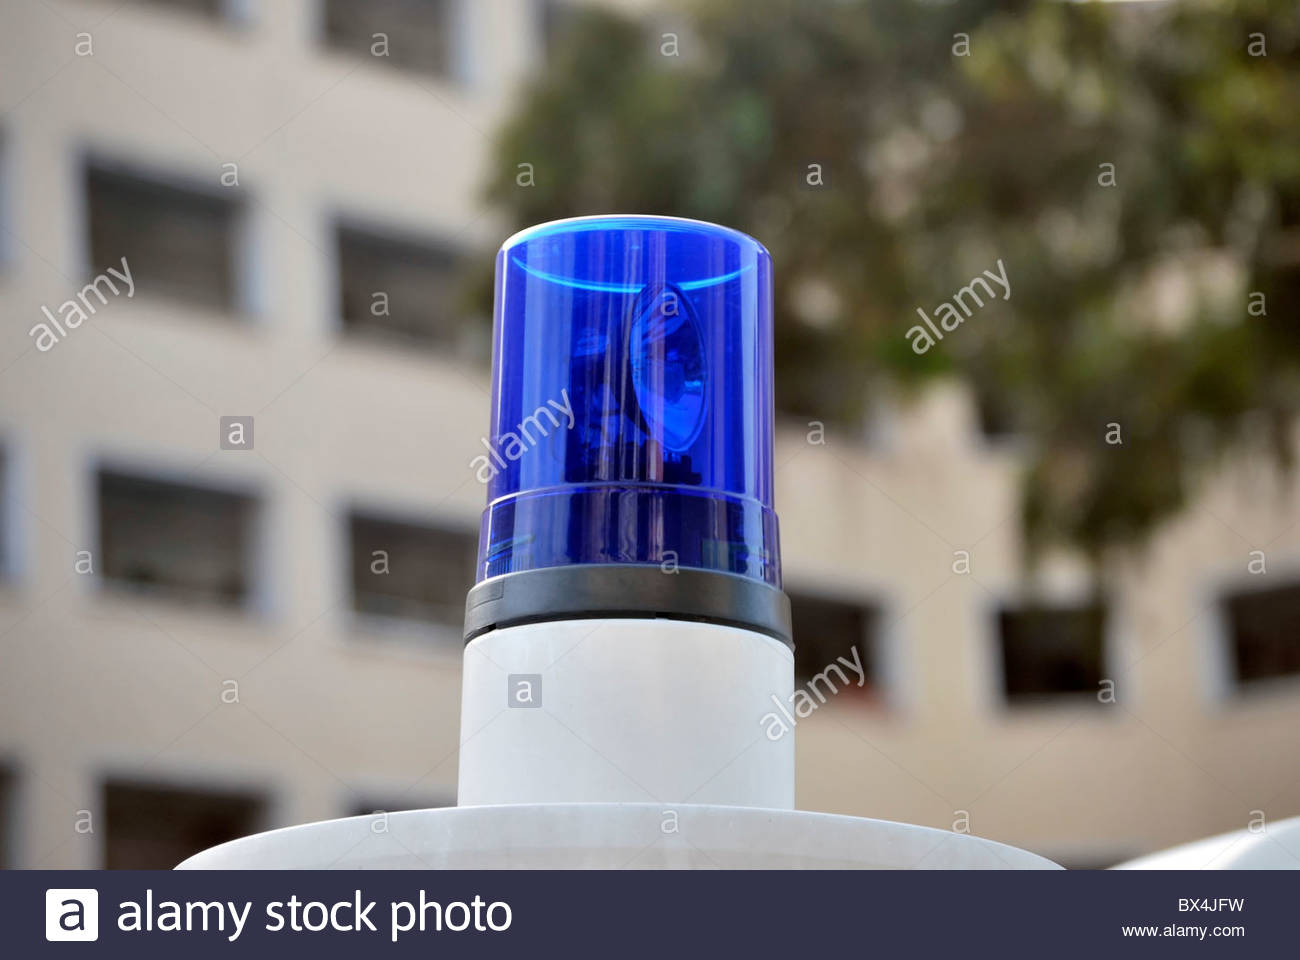 Blue emergency siren. Alarm and danger concept - Stock Image